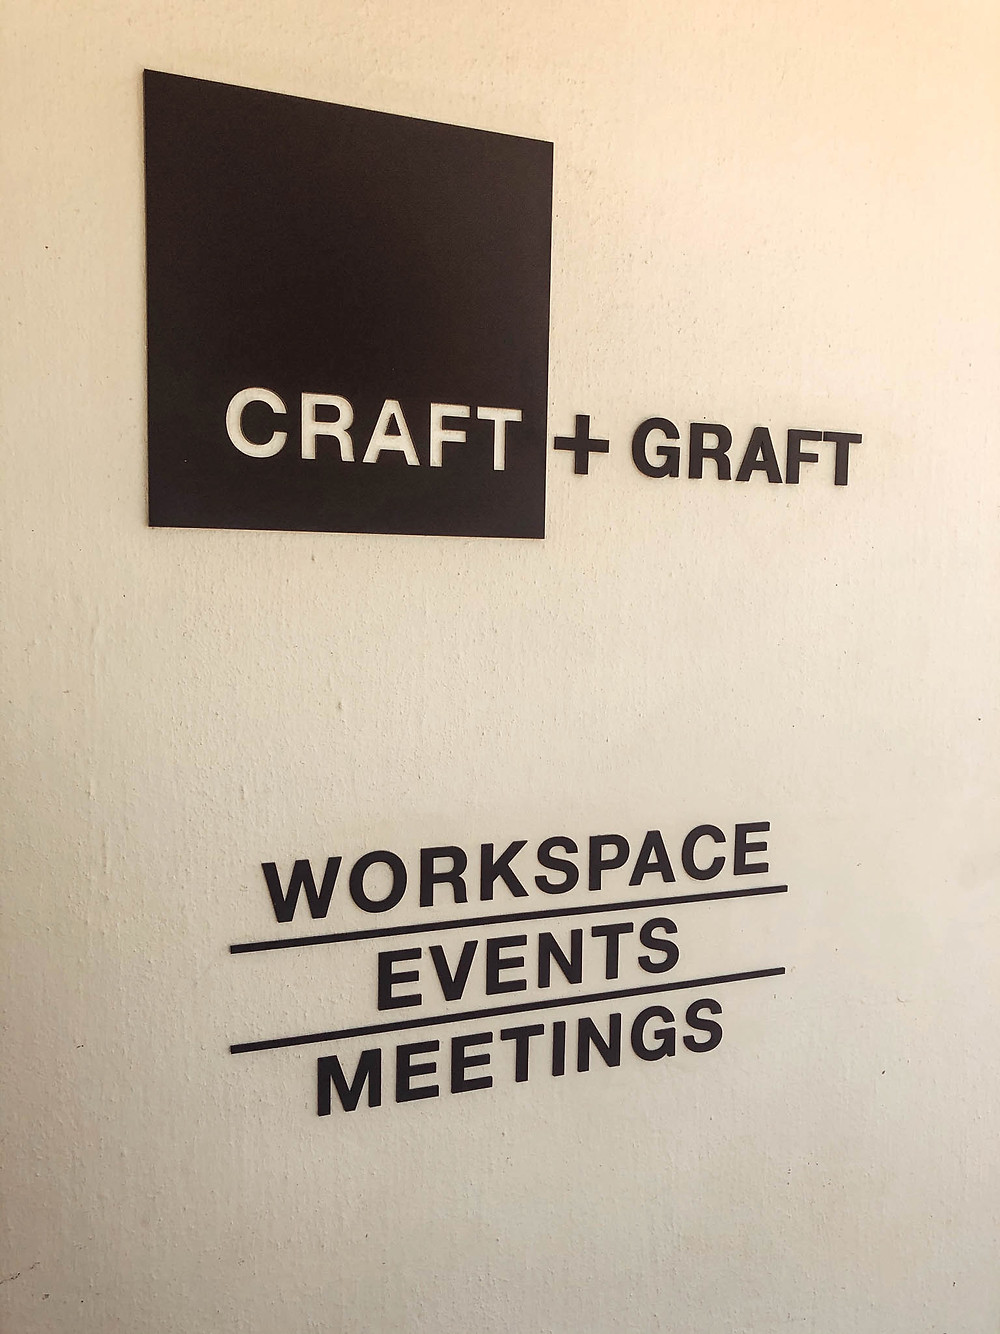 Craft+Graft coworking in Cape Town